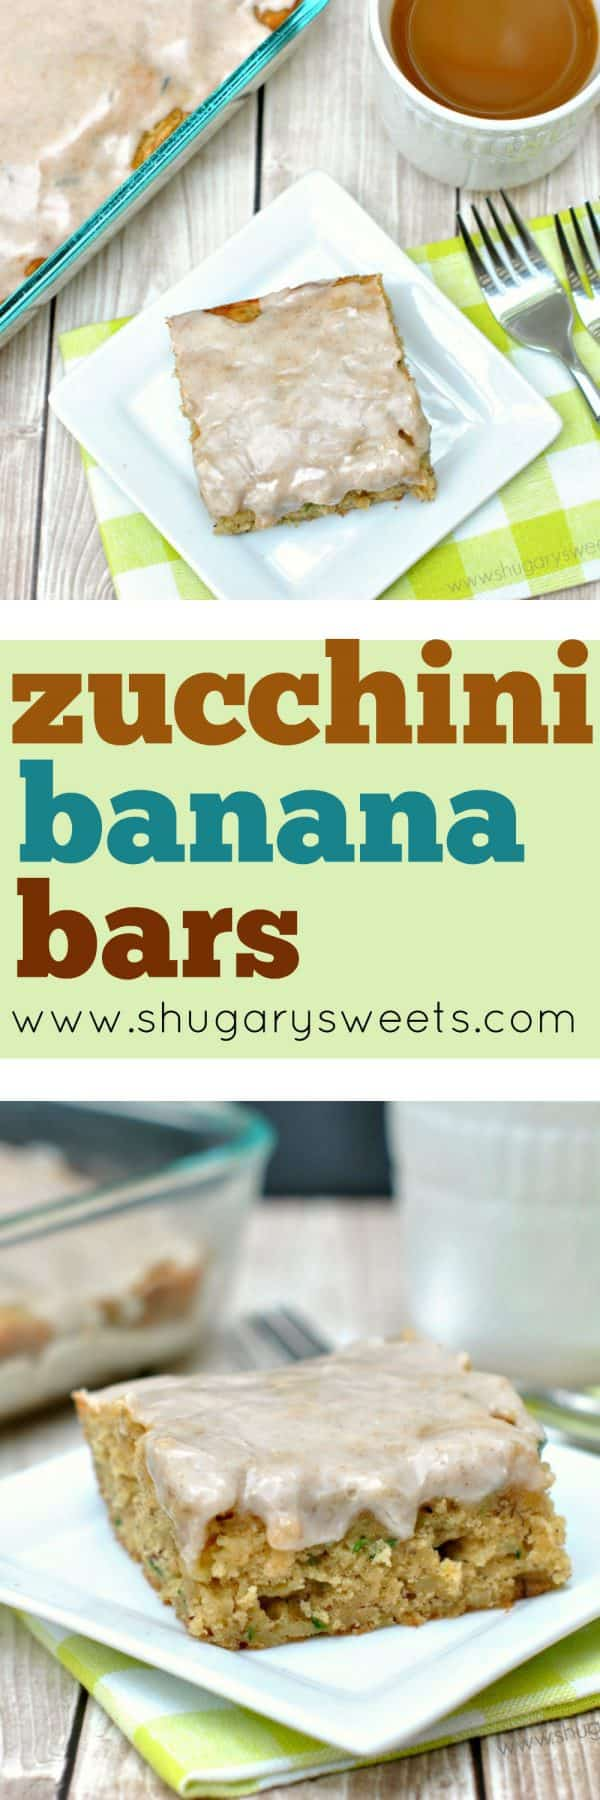 Grab some fresh zucchini from your garden, the farmstand or your grocery store! These Zucchini Banana Bars are begging to be made. And don't forget to top them with the creamy cinnamon glaze!